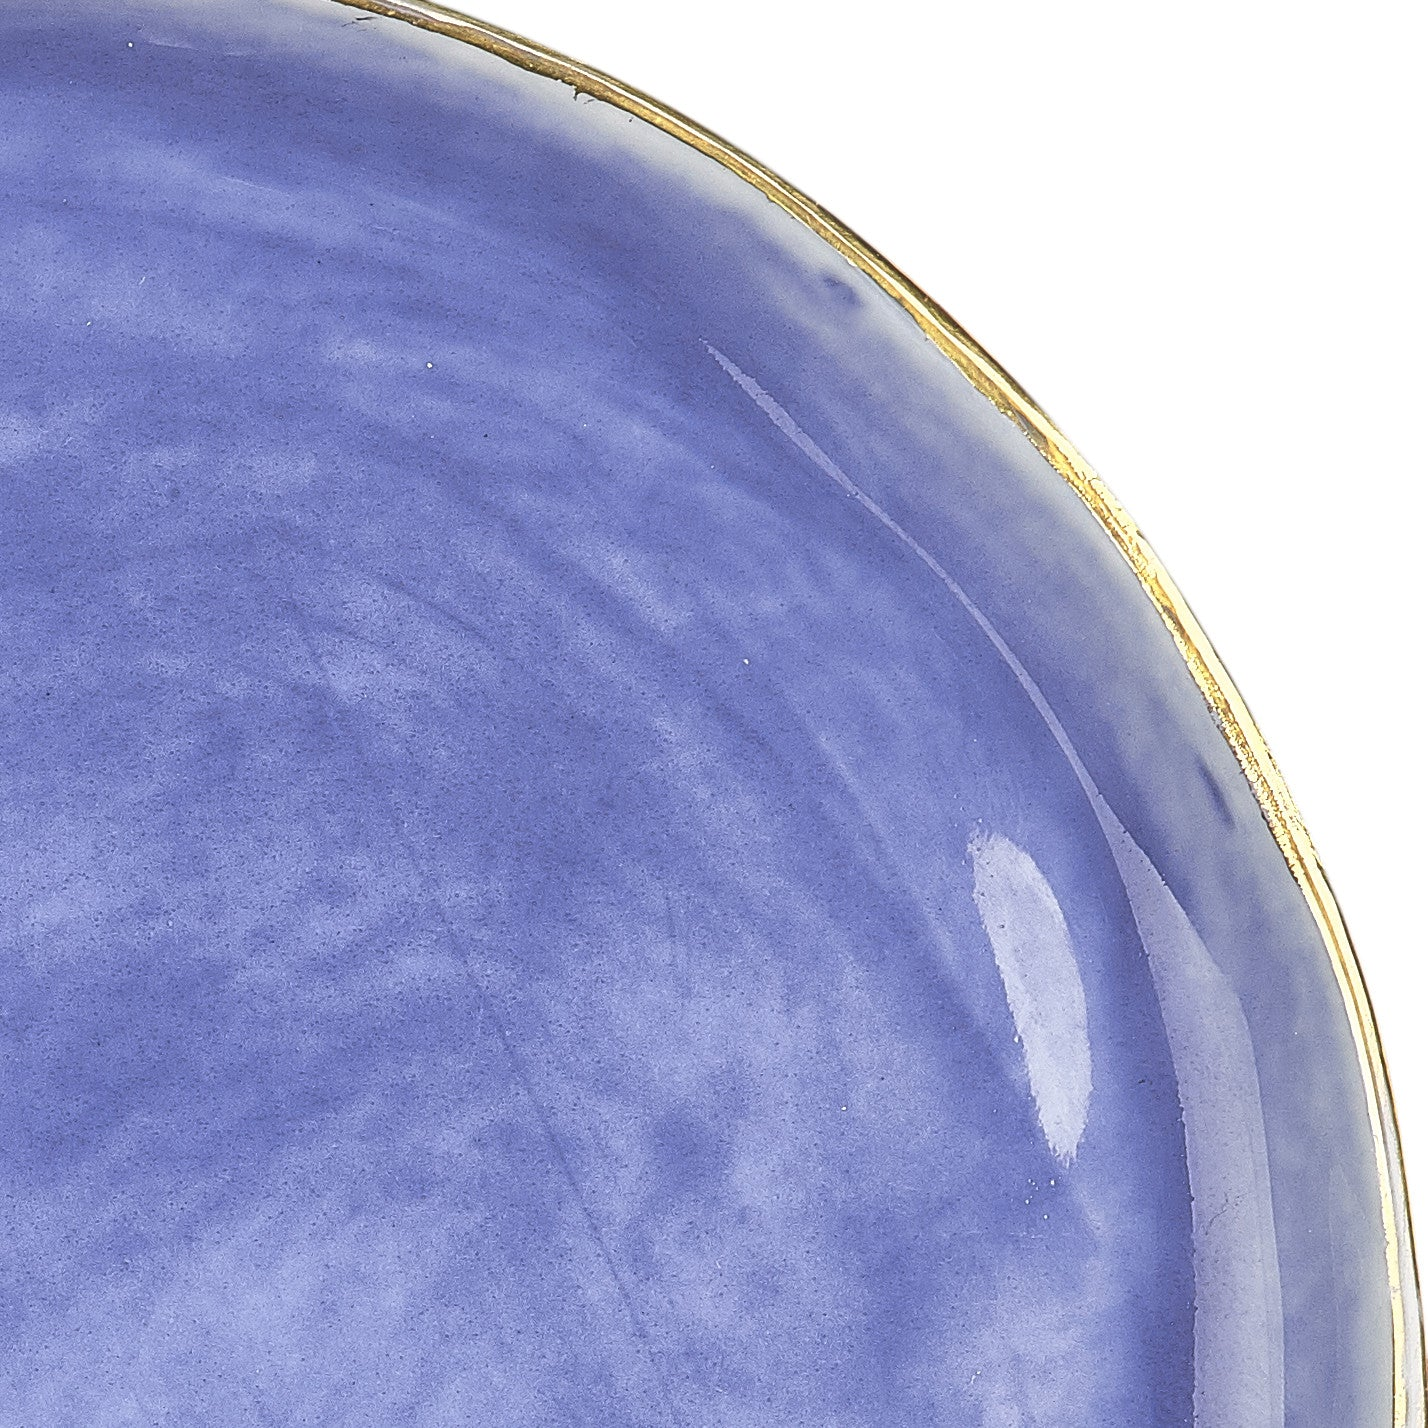 Small Blue Ceramic Plate with Gold Rim, 12cm